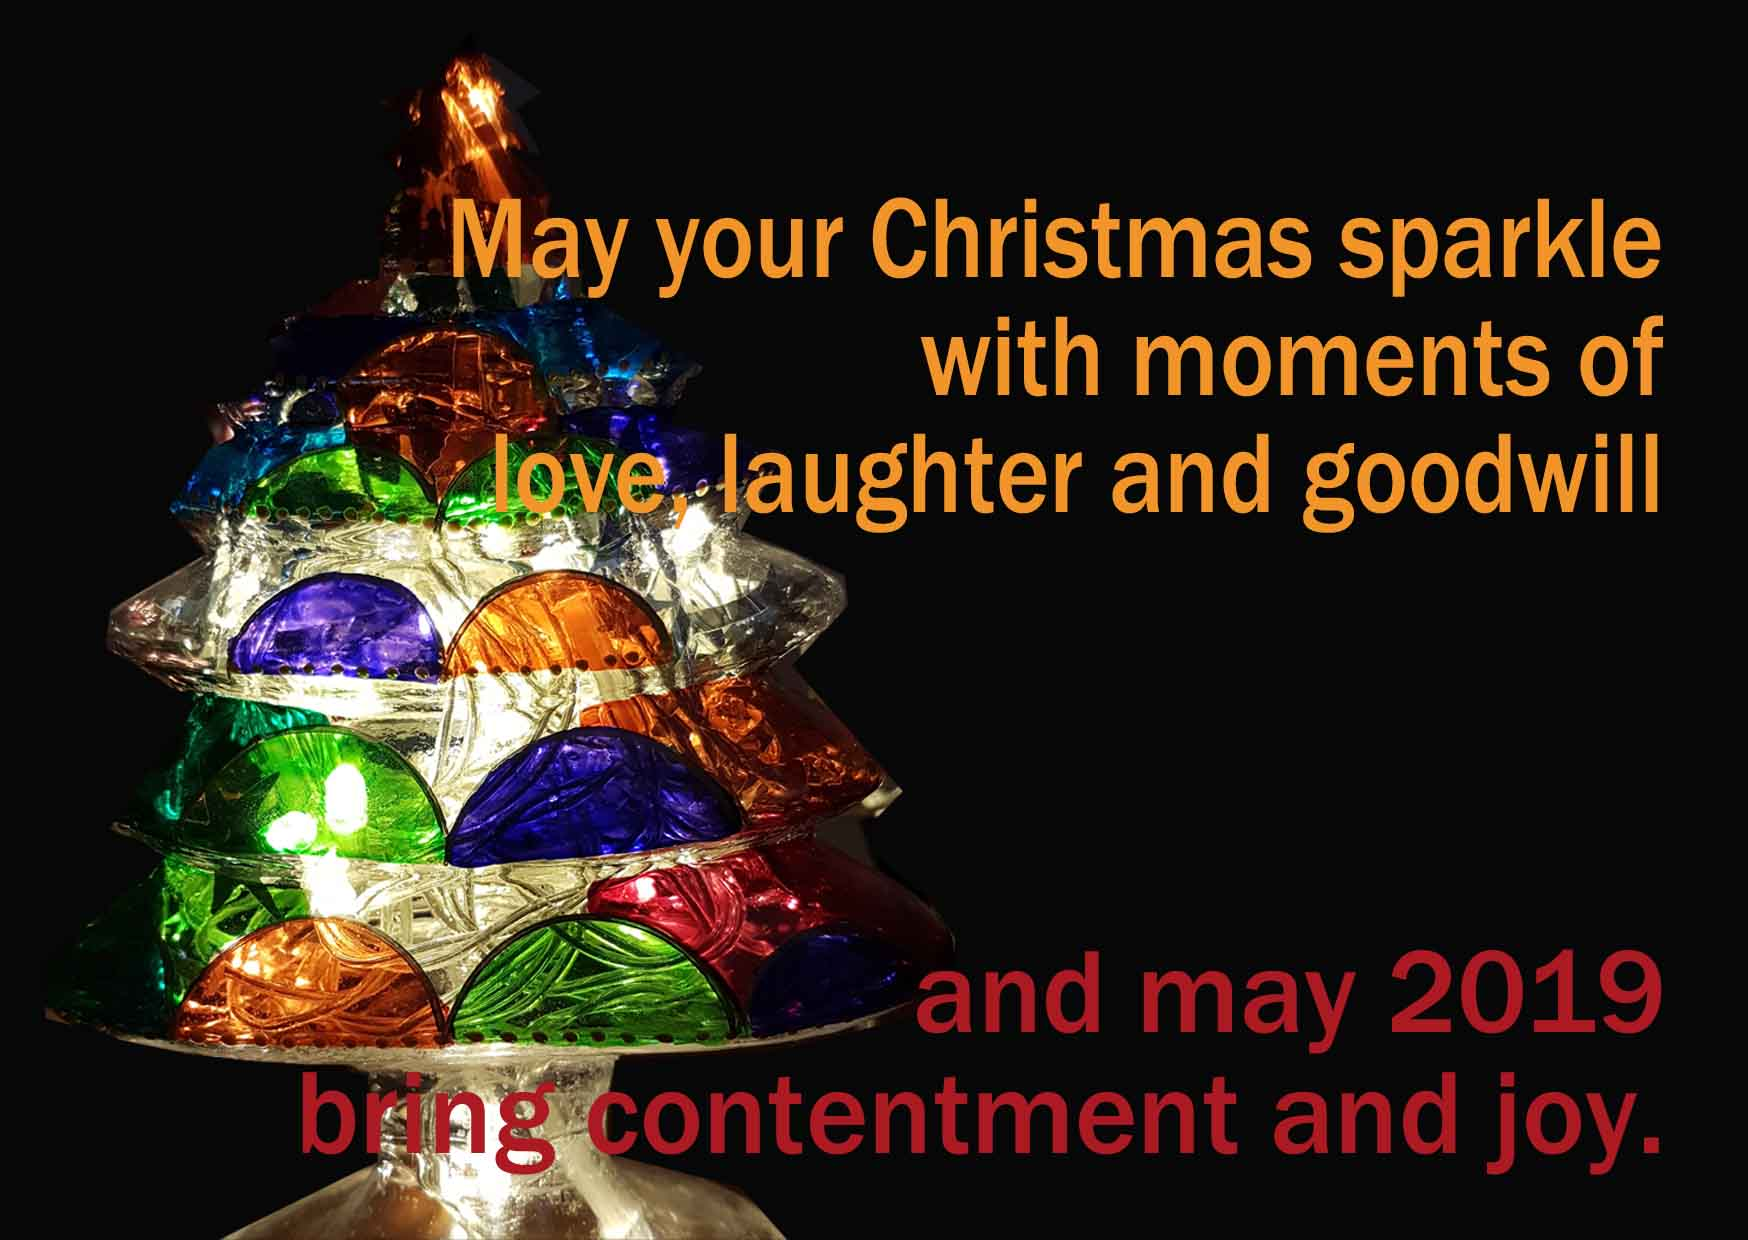 May your Christmas sparkle with moments of love, laughter and goodwill